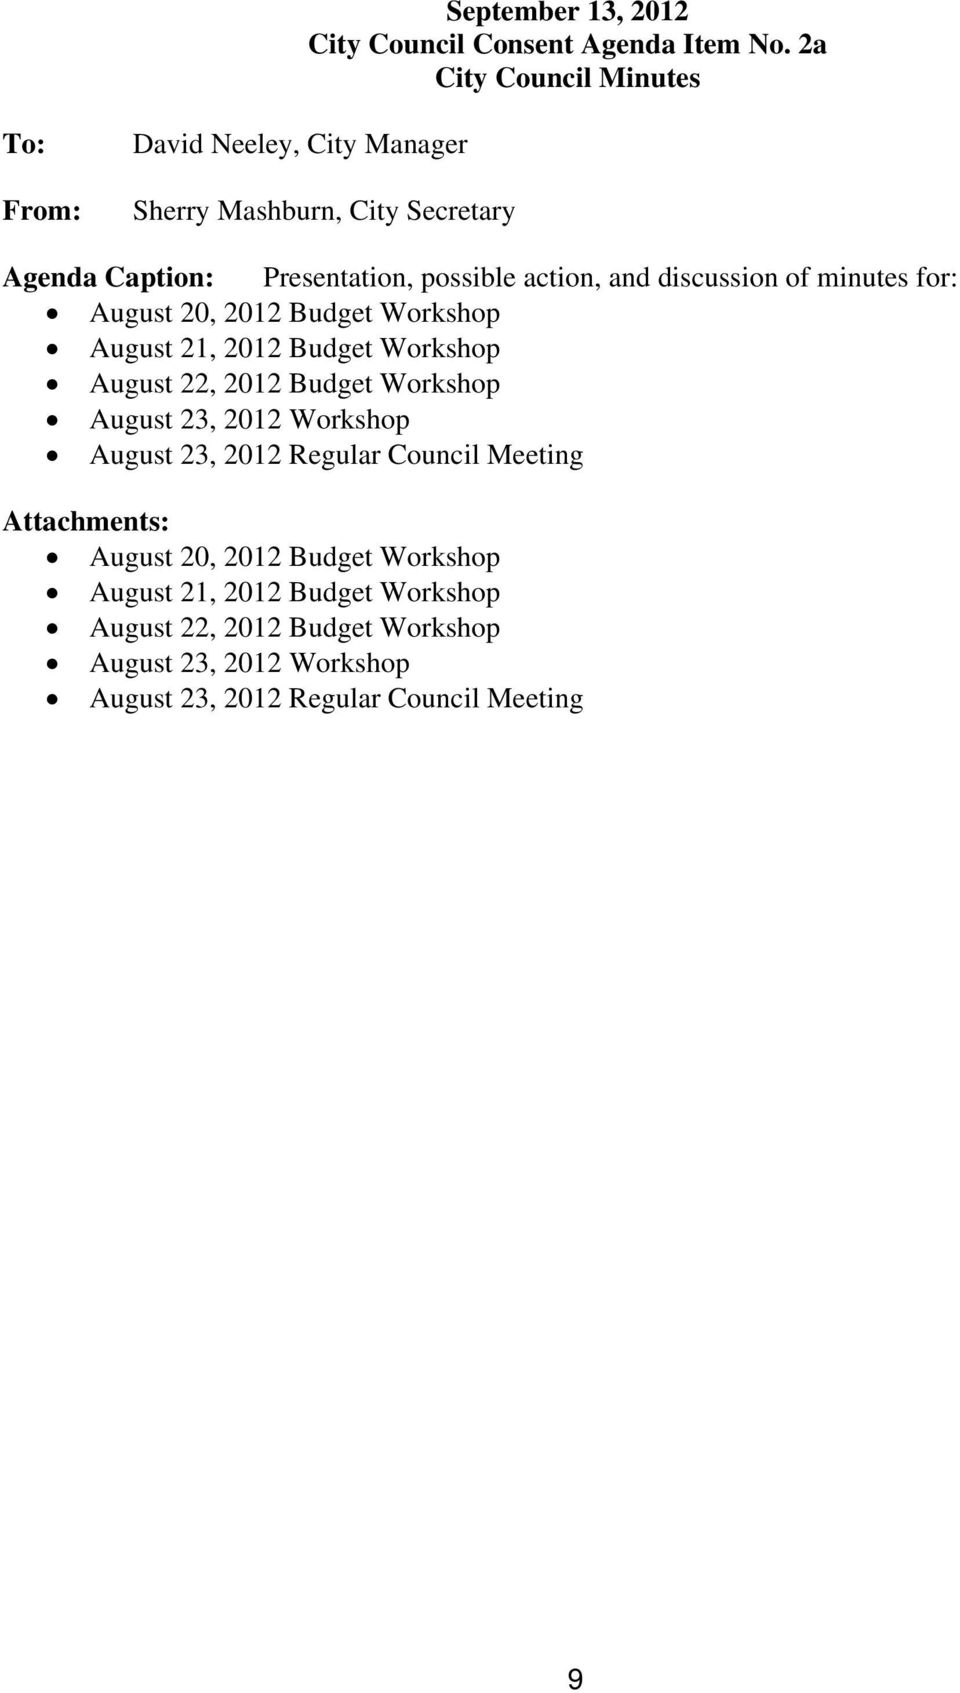 and discussion of minutes for: August 20, 2012 Budget Workshop August 21, 2012 Budget Workshop August 22, 2012 Budget Workshop August 23,